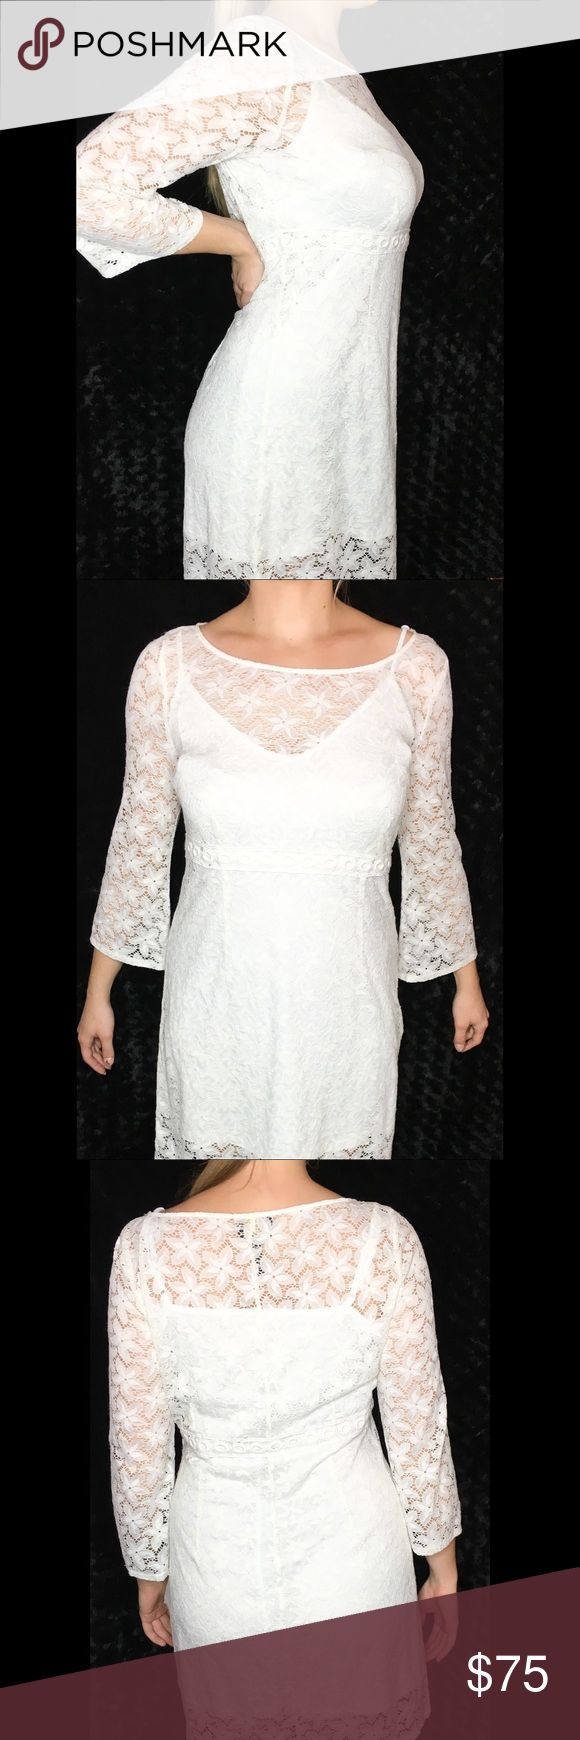 """✨TRENDY✨ White Lace Long Sleeve Dress This dress is SUPER cute! I bought this a little large as it was the last in stock with all intentions to wear it (even ripped the tag off 🤦🏼♀️) but ended up being too sick to go to the event that I planned to wear it to 😢 So it's NWOT. It's a size 12, fits like a 10. The dress hits mid-thigh on me (I'm 5'10"""") and has a built-in slip that has one strap detached (bought from Nordstrom that way) I bought this for $160 on sale. ✨NON SMOKING HOME✨ No…"""